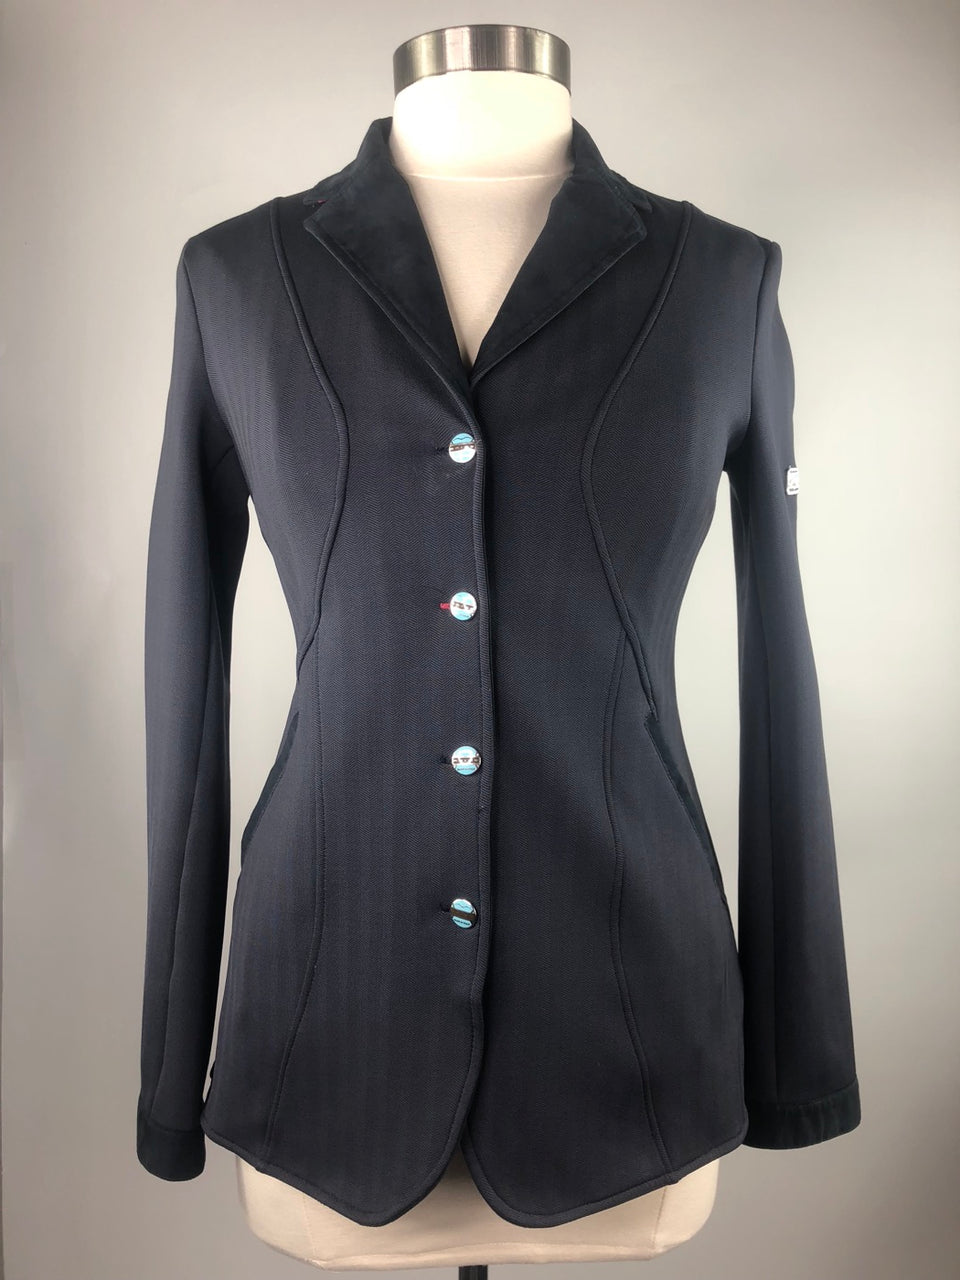 Animo Show Jacket in Grey w/Navy - Women's IT 44